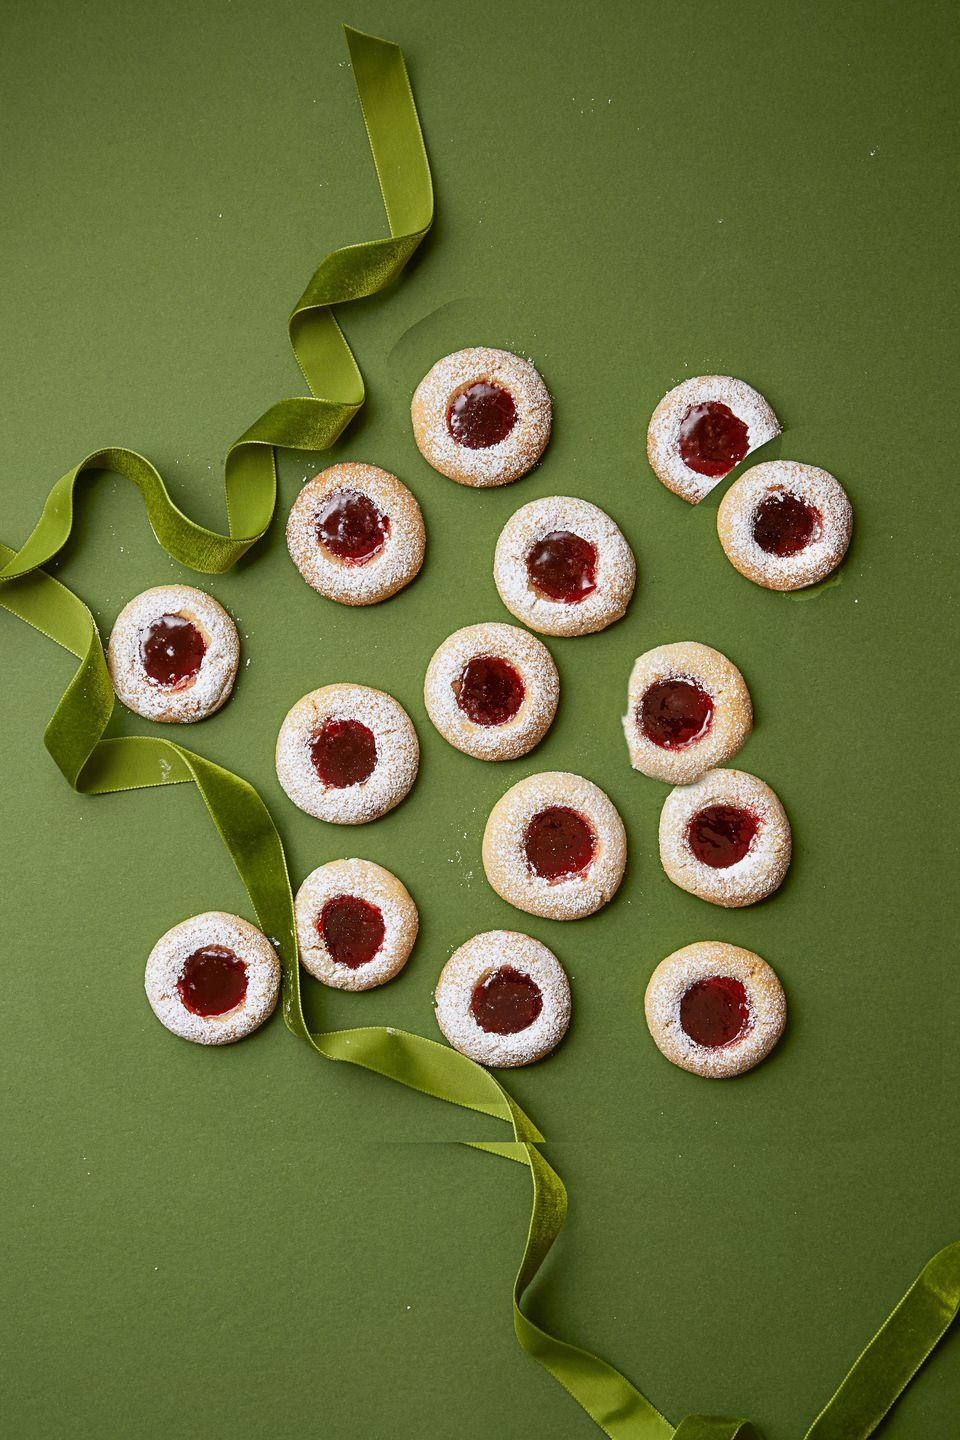 "<p>These Swedish cookies are called <em>Hallongrotta</em>, meaning ""raspberry cave"". We added a little honey for extra sweetness.</p><p><em><a href=""https://www.goodhousekeeping.com/food-recipes/dessert/a35760/razzy-jammy-thumbprints/"" rel=""nofollow noopener"" target=""_blank"" data-ylk=""slk:Get the recipe for Raspberry Jam Thumbprints »"" class=""link rapid-noclick-resp"">Get the recipe for Raspberry Jam Thumbprints »</a></em></p>"